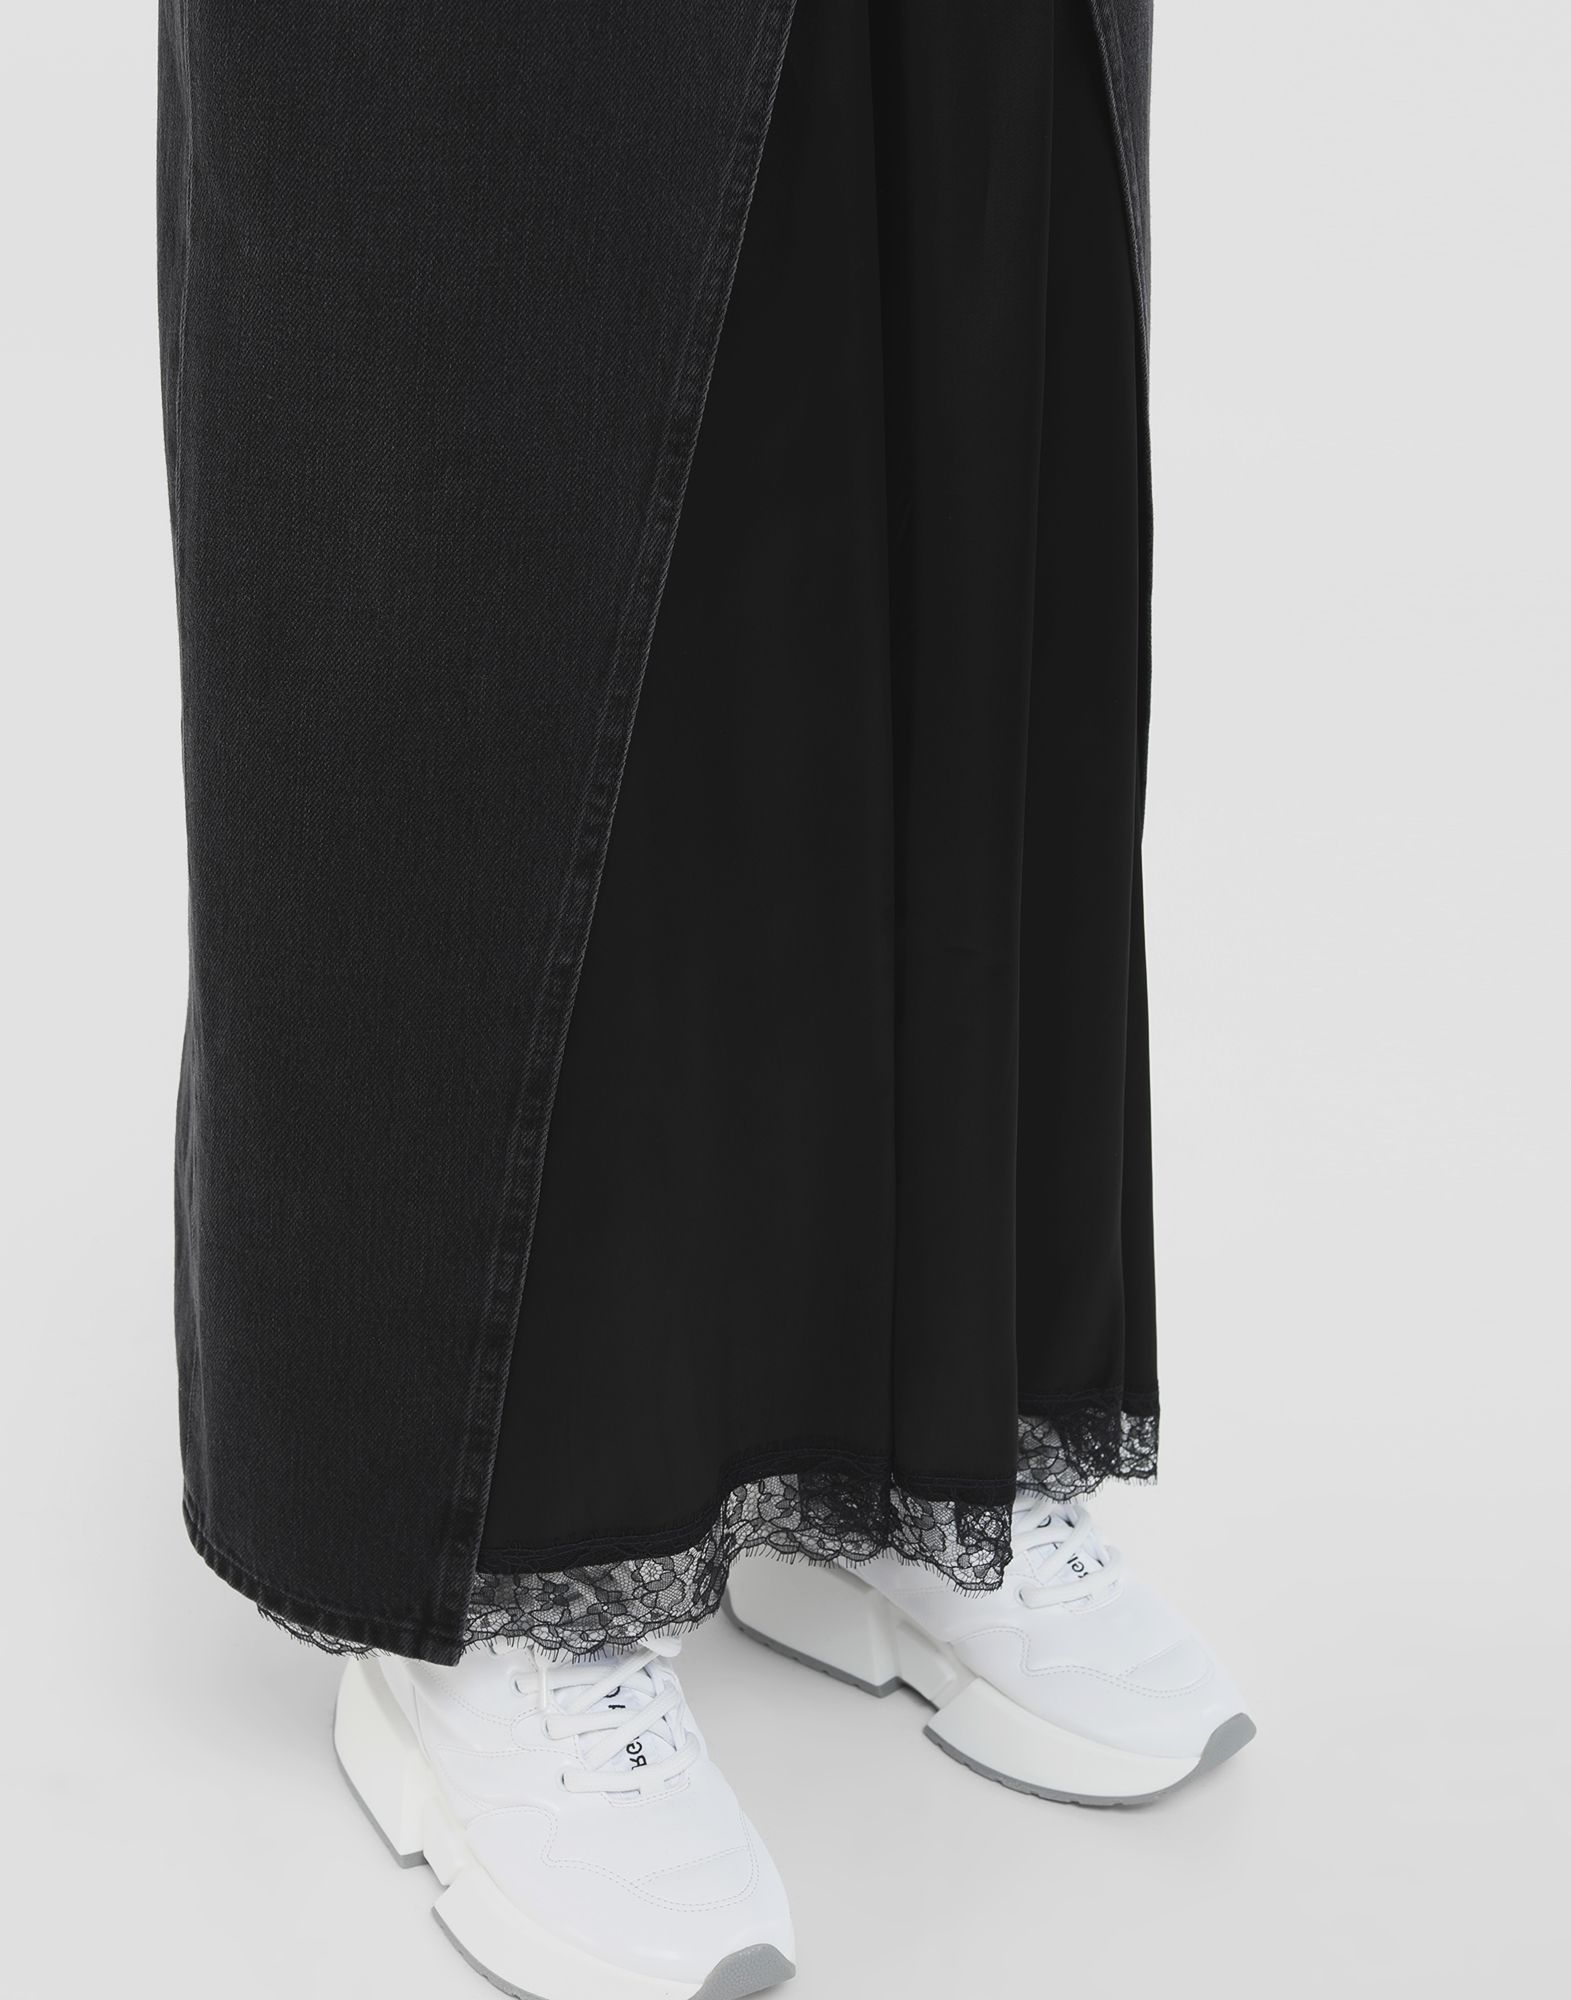 MM6 MAISON MARGIELA Multi-wear denim skirt Long skirt Woman b